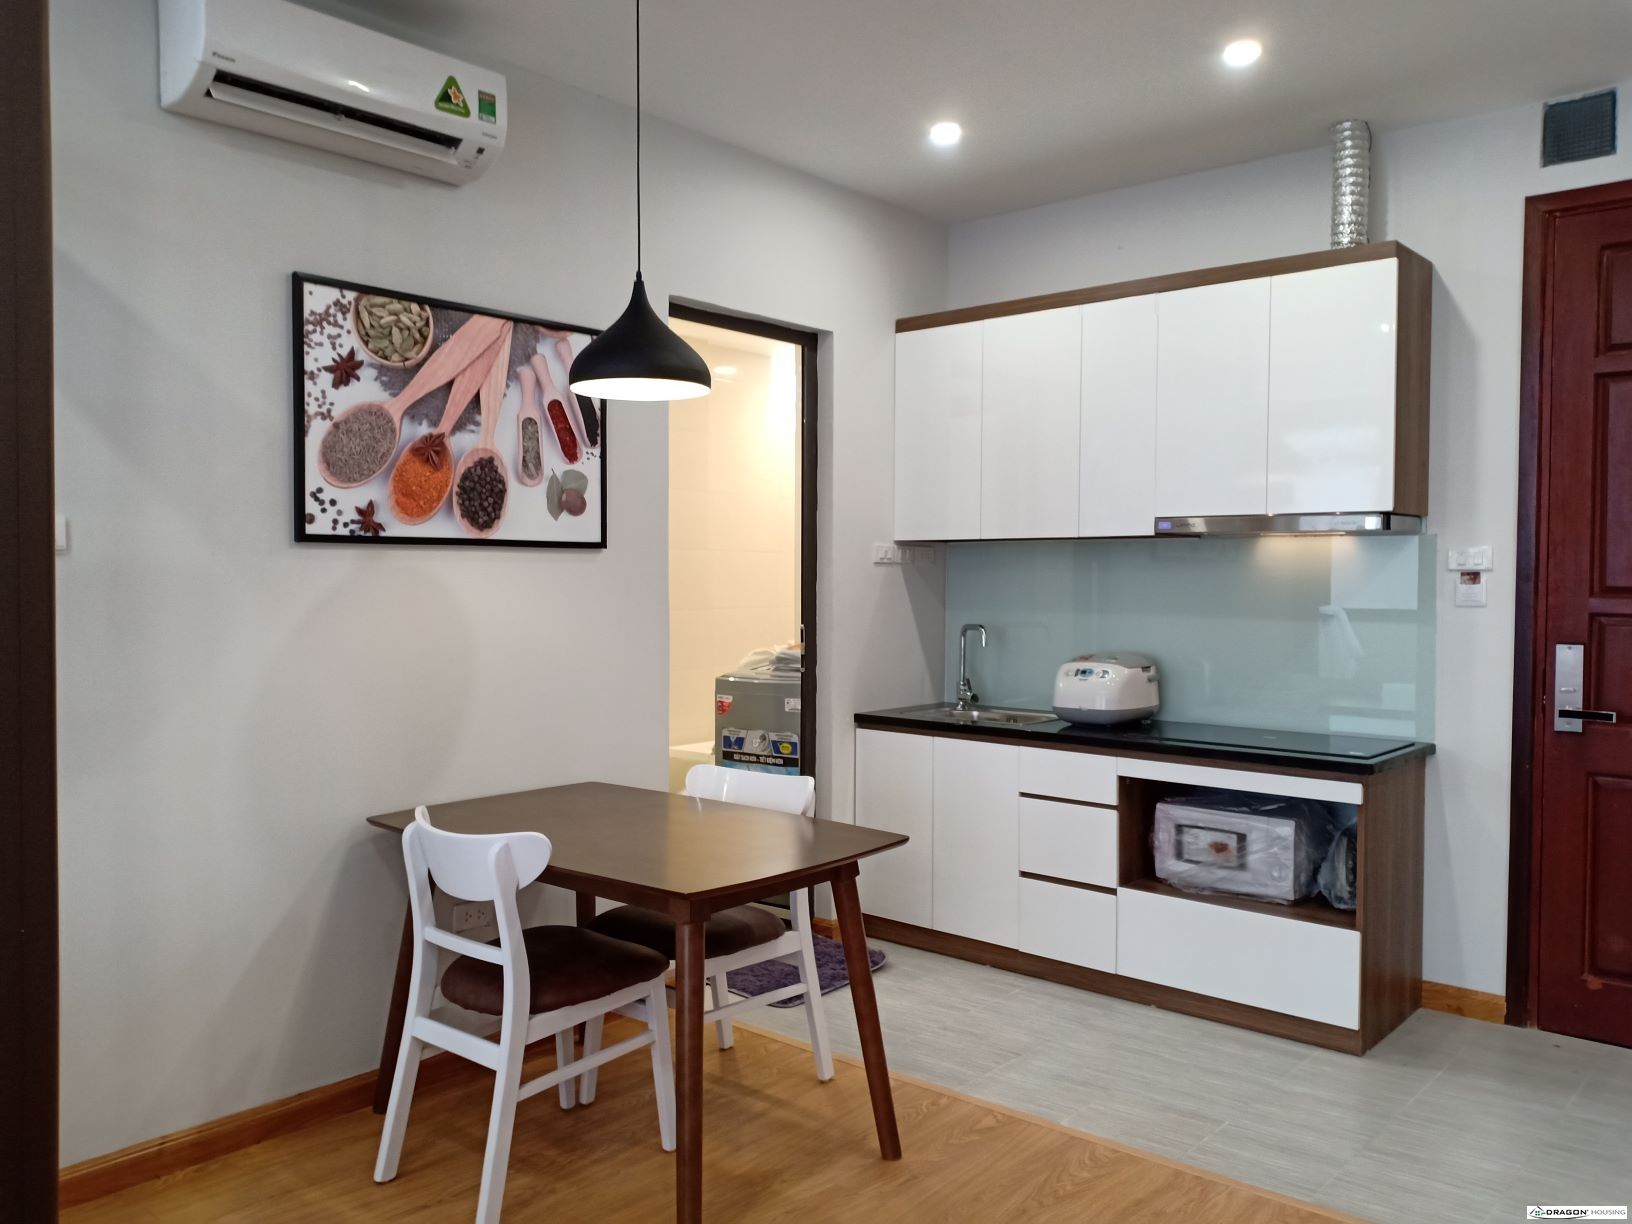 2. BR1 Kitchen area